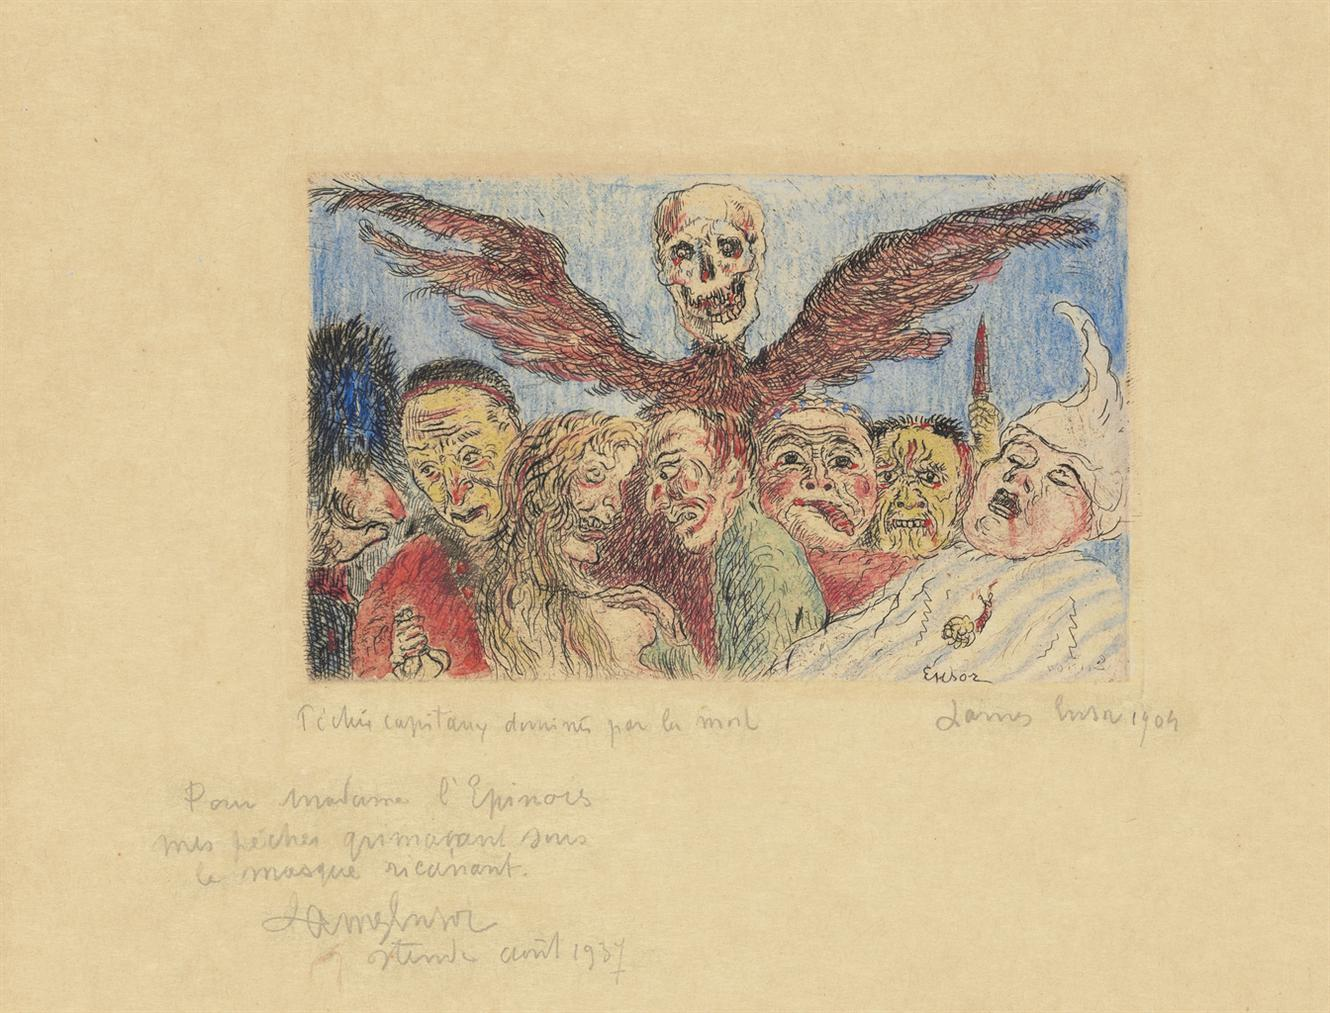 James Ensor-Peches Capitaux Domines Par La Mort, From: Les Sept Peches Capitaux (The Deadly Sins Dominated By Death, From: The Seven Deadly Sins)-1904